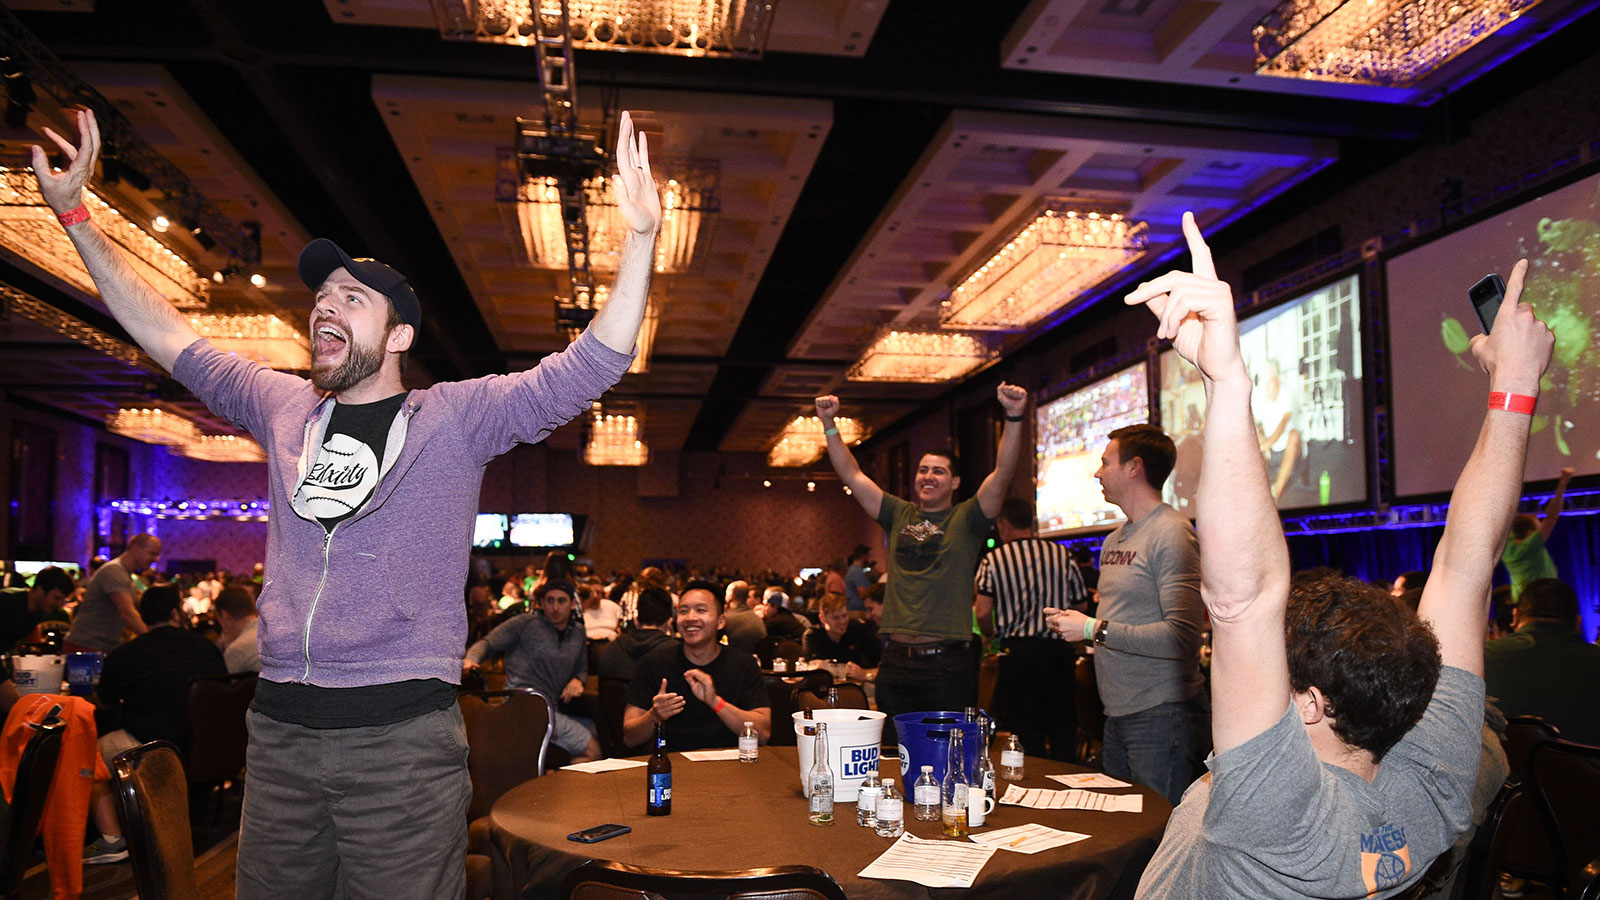 Fans celebrate college basketball's biggest tournament at Hoops & Hops at The Cosmopolitan of Las Vegas.